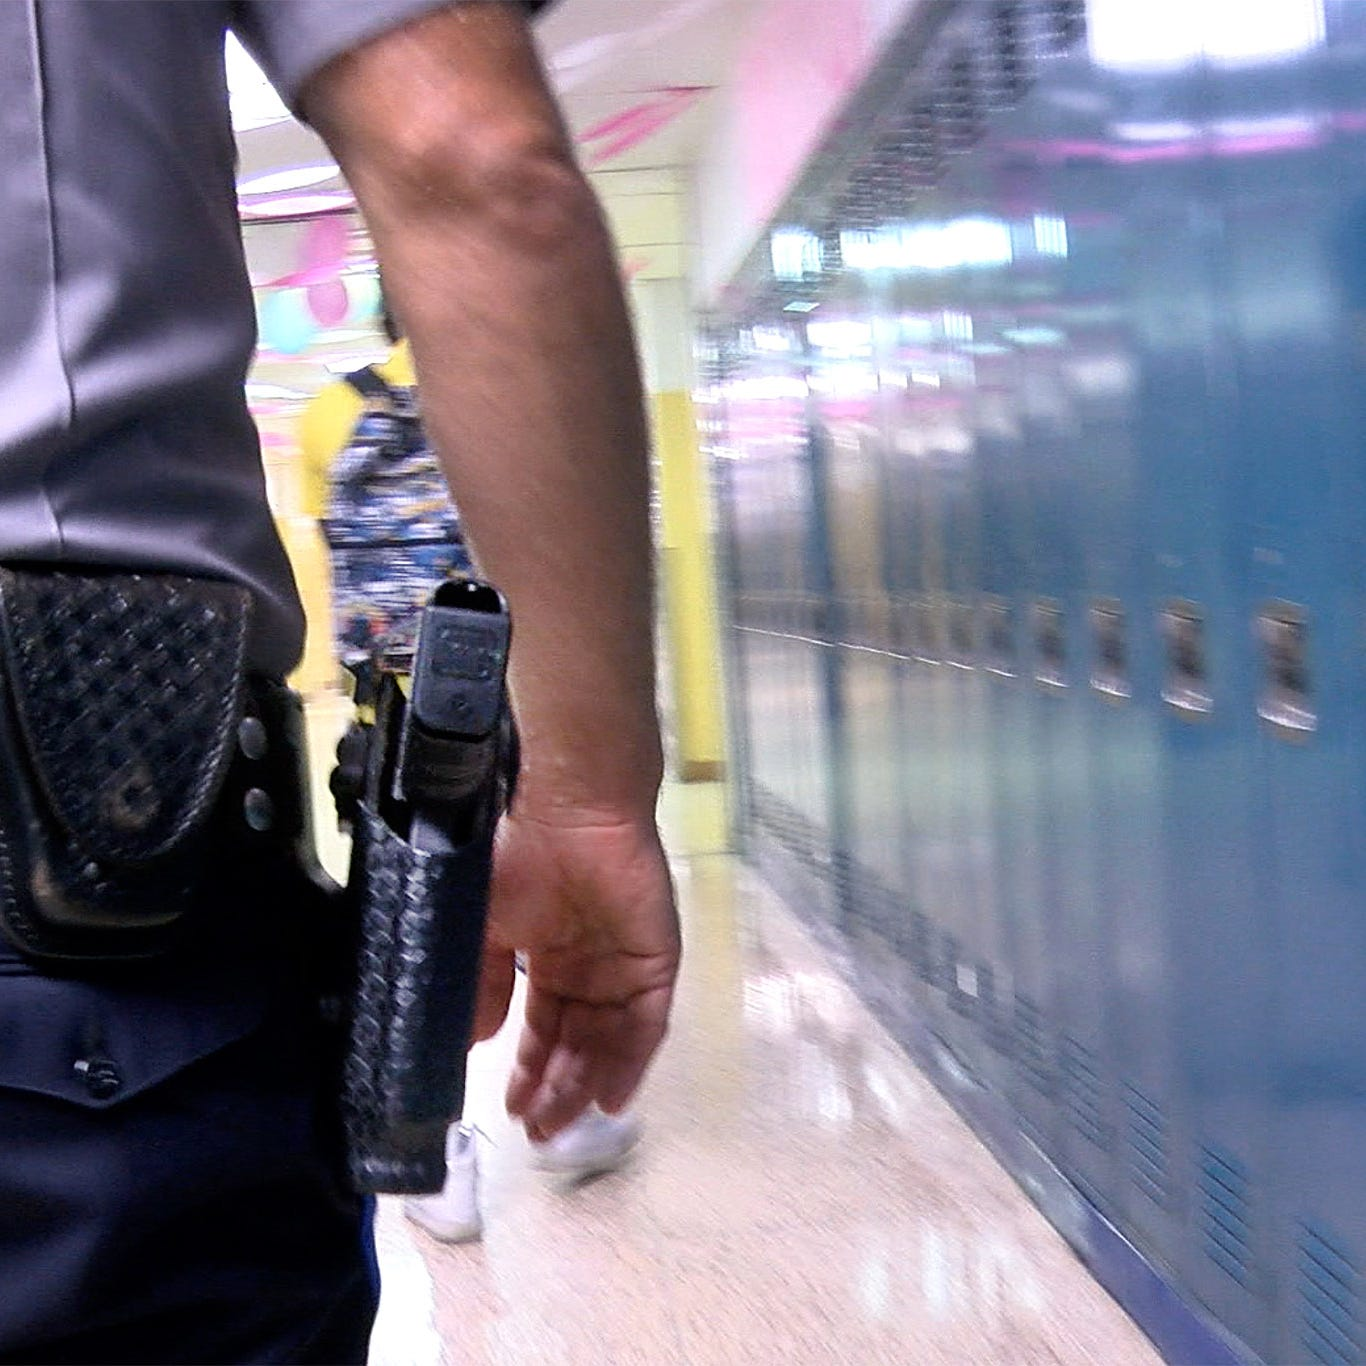 To make schools safer, focus on classrooms, not guns: DiMaso